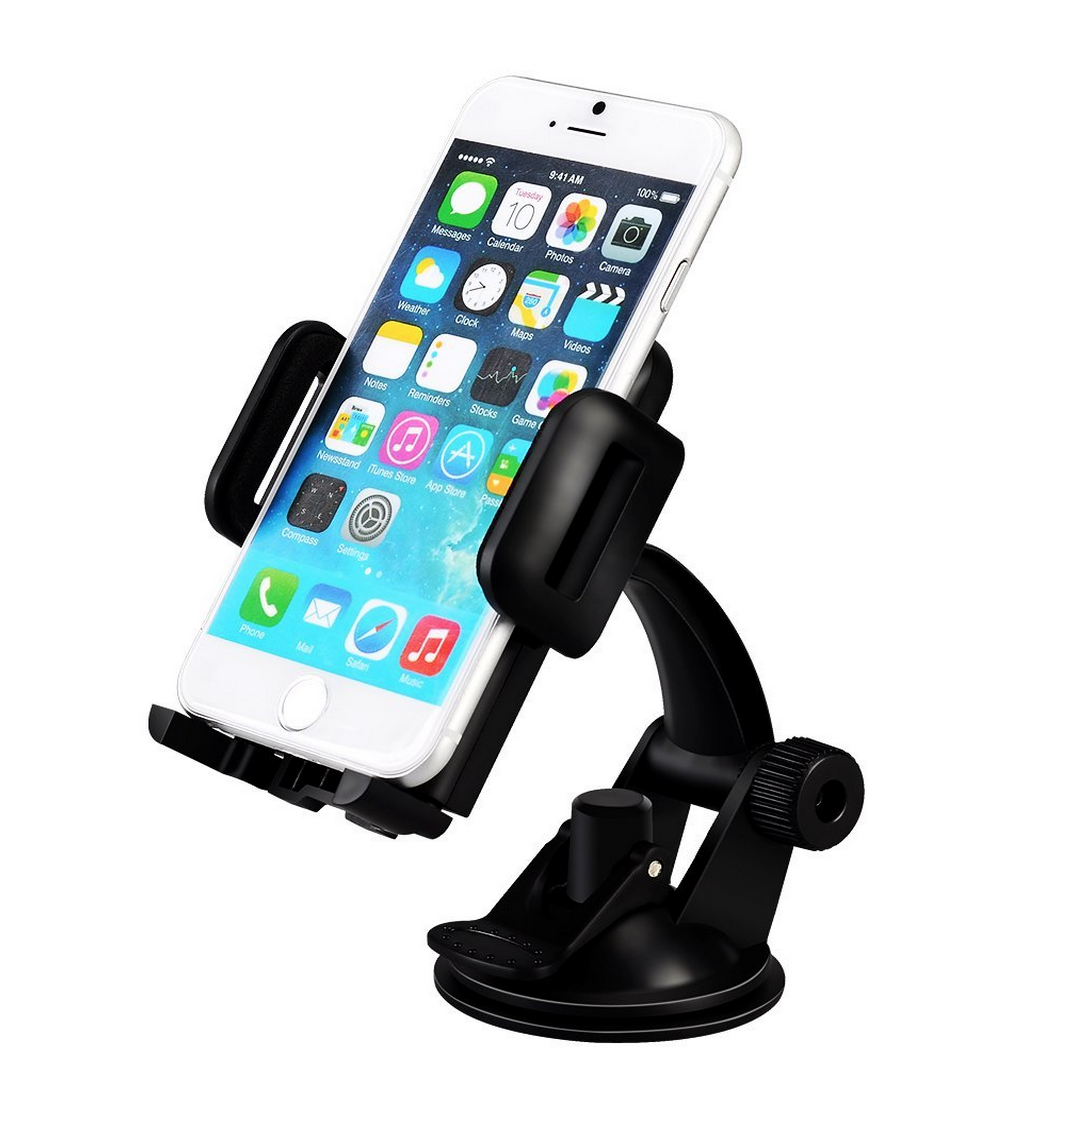 Highly Rated Mpow® Grip Pro Mobile Phone Universal Car Mount Only $9.99 (Reg. $36.99!)